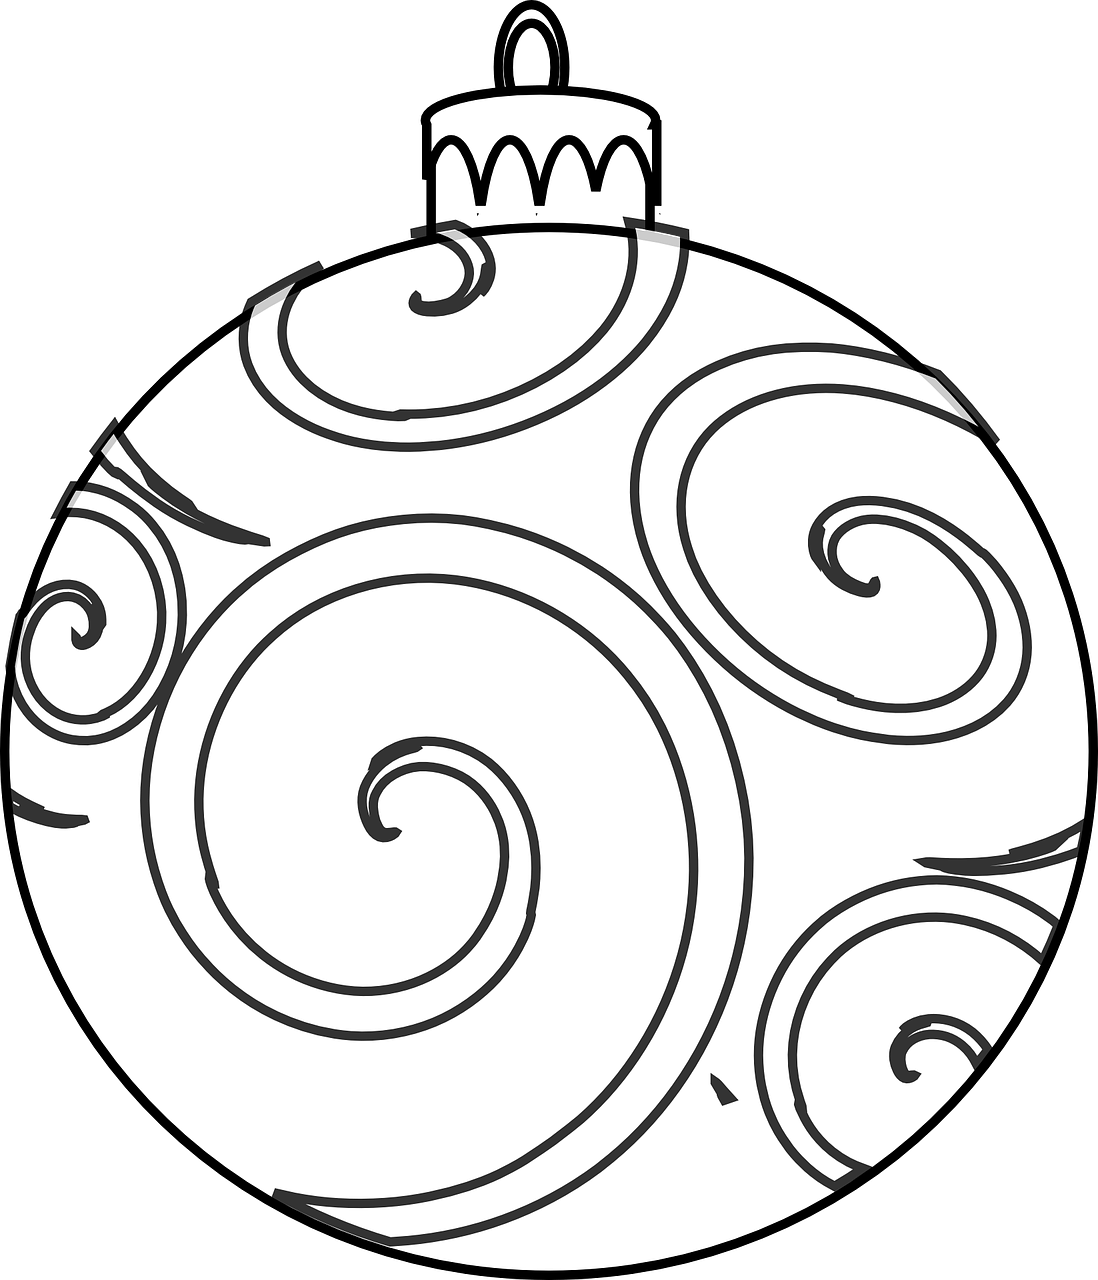 easy coloring pages christmas - photo#23